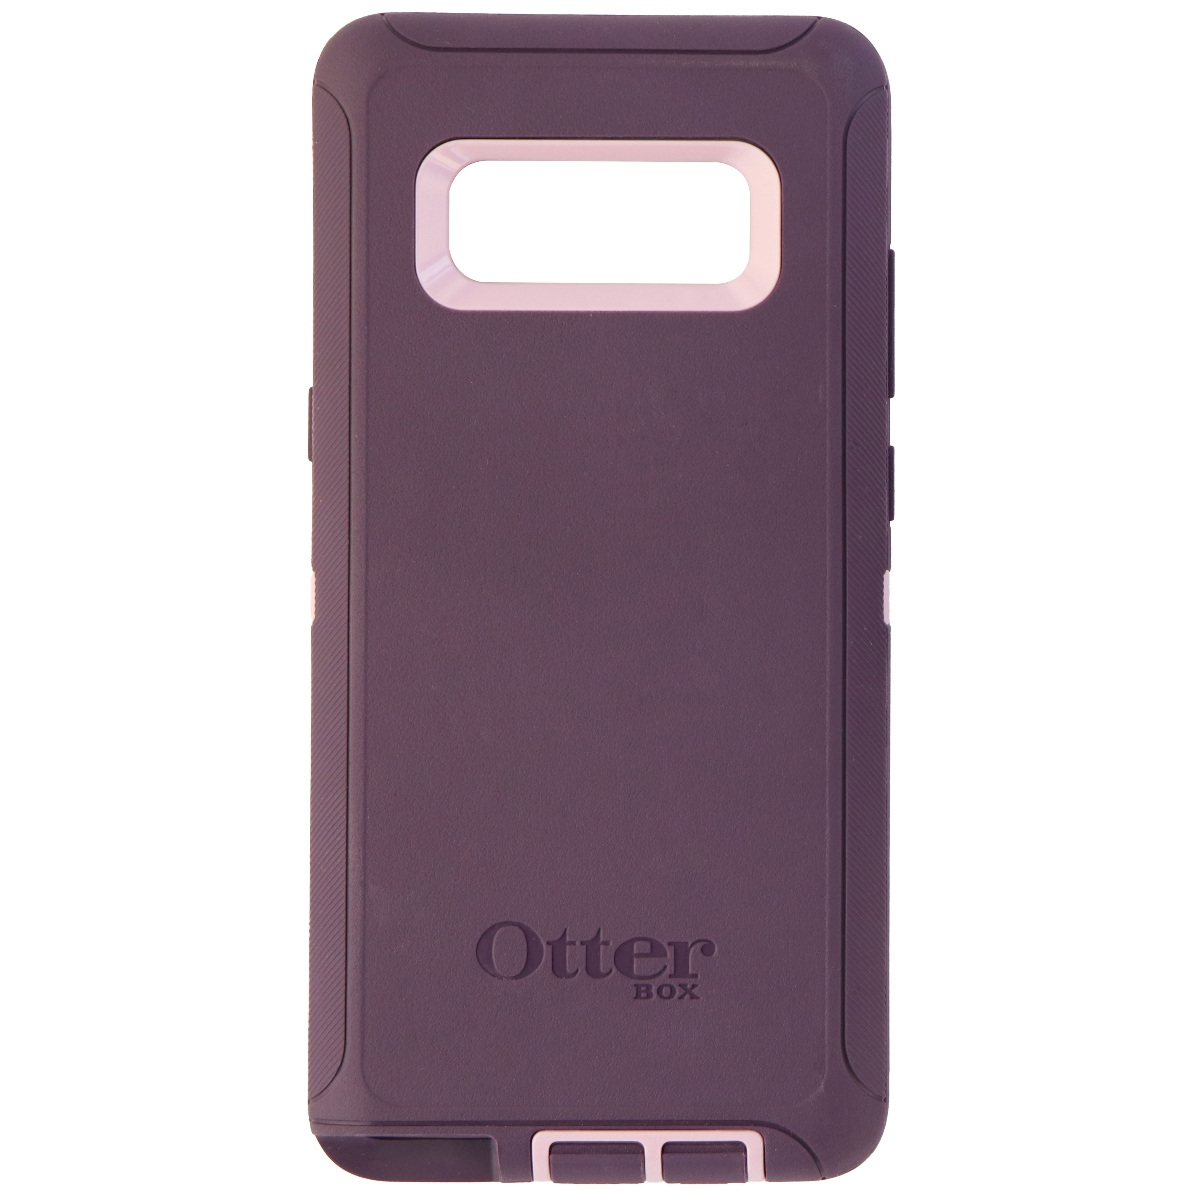 OtterBox Defender Series Case w/ Holster for Samsung Galaxy Note 8 - Nebula